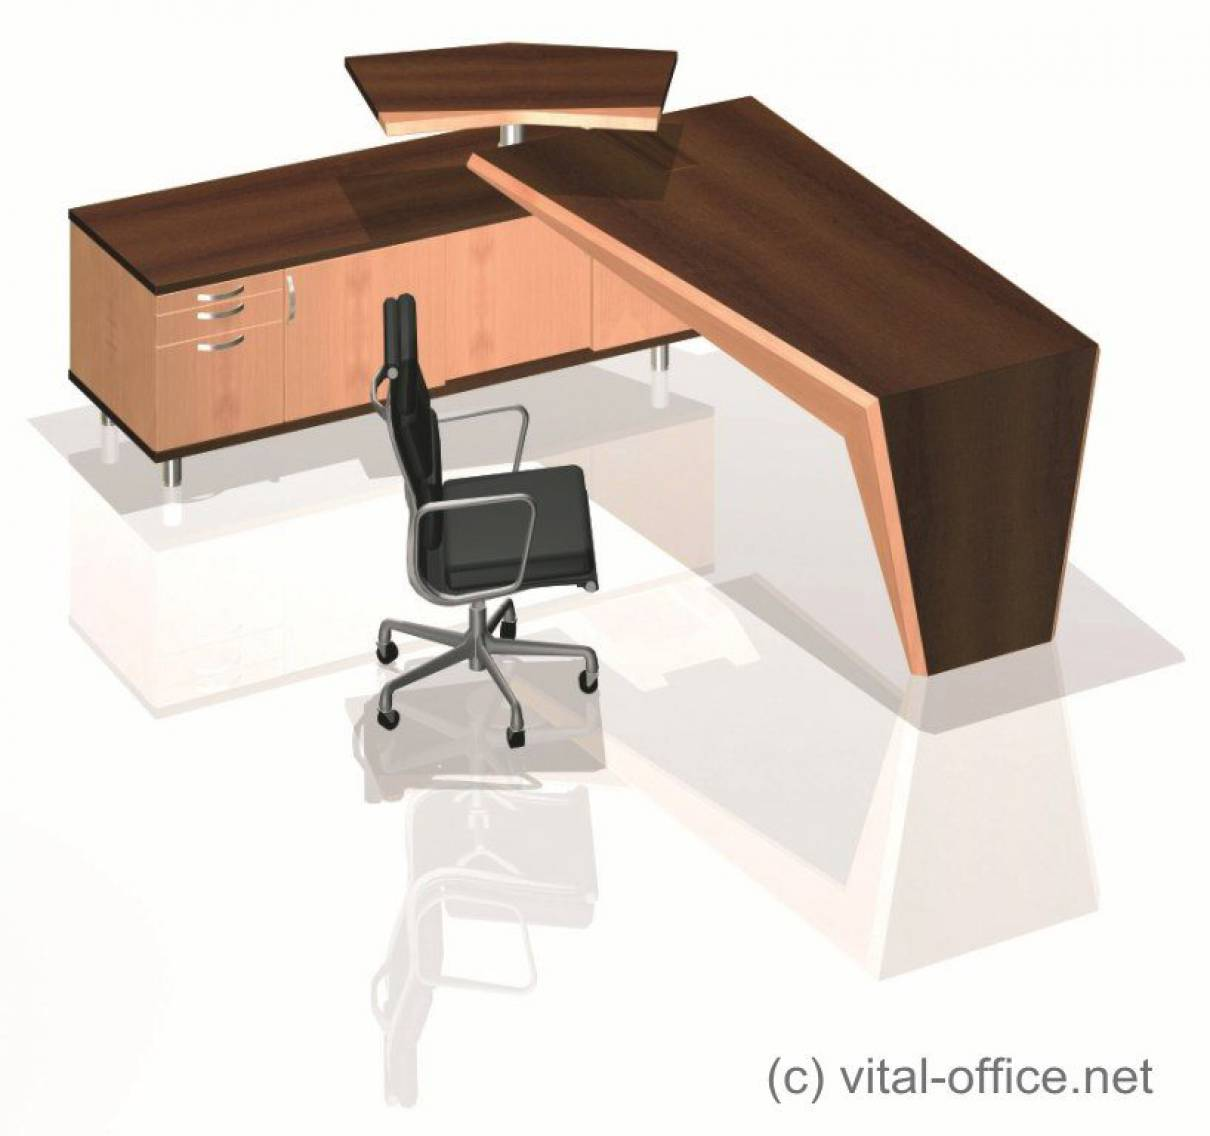 Stand Up Office Designs : Design variations with board and stand up desk vital office